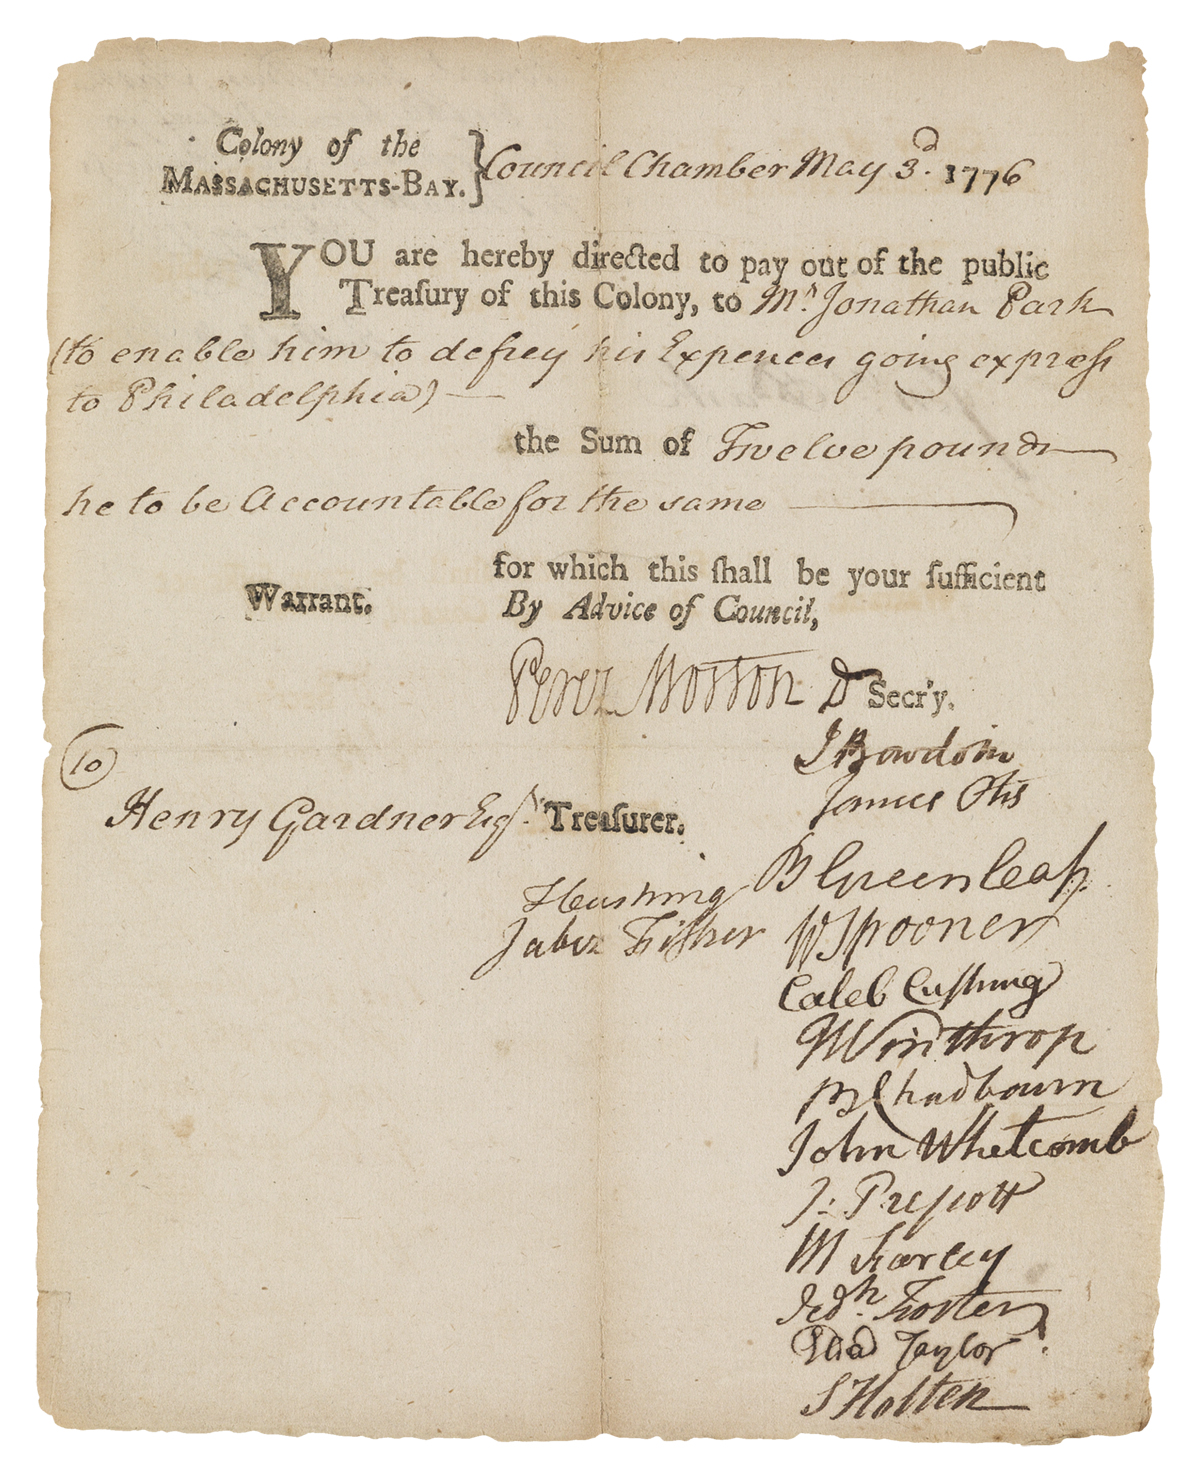 (AMERICAN REVOLUTION.) Pay order to express rider Jonathan Park to enable him to defrey his Expences going express to Philadelphia.